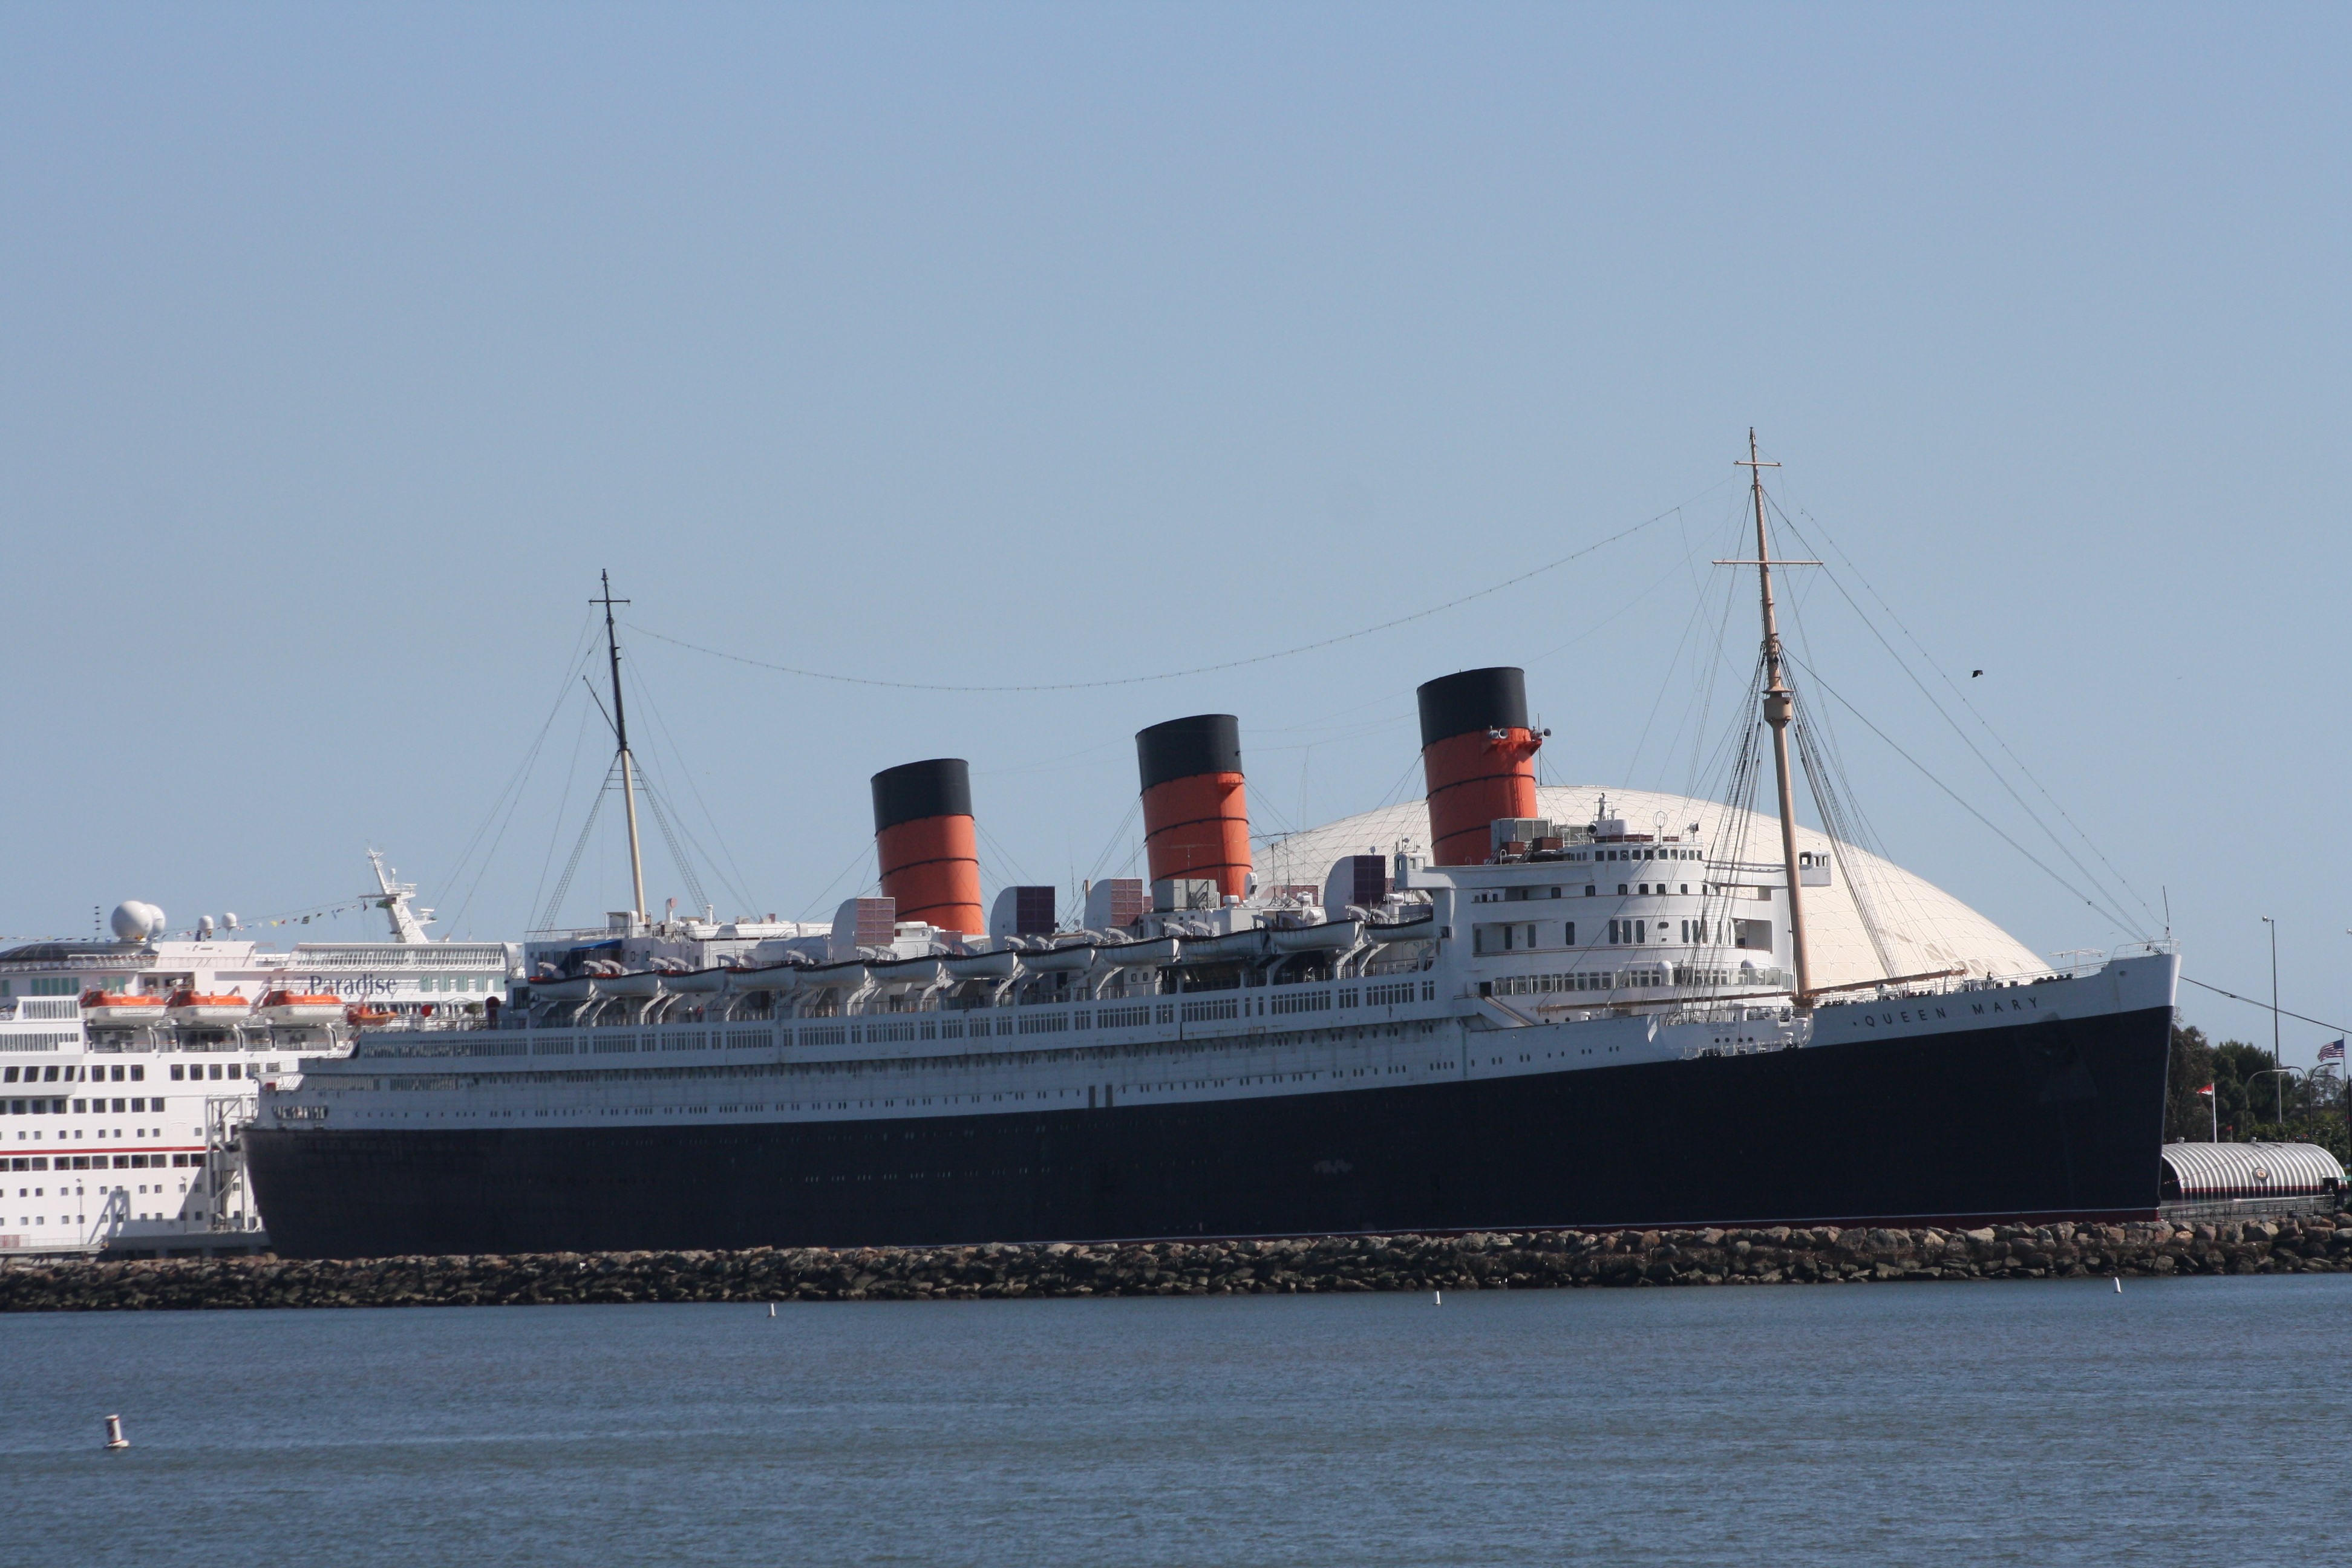 Pictures Of The Queen Mary In Long Beach